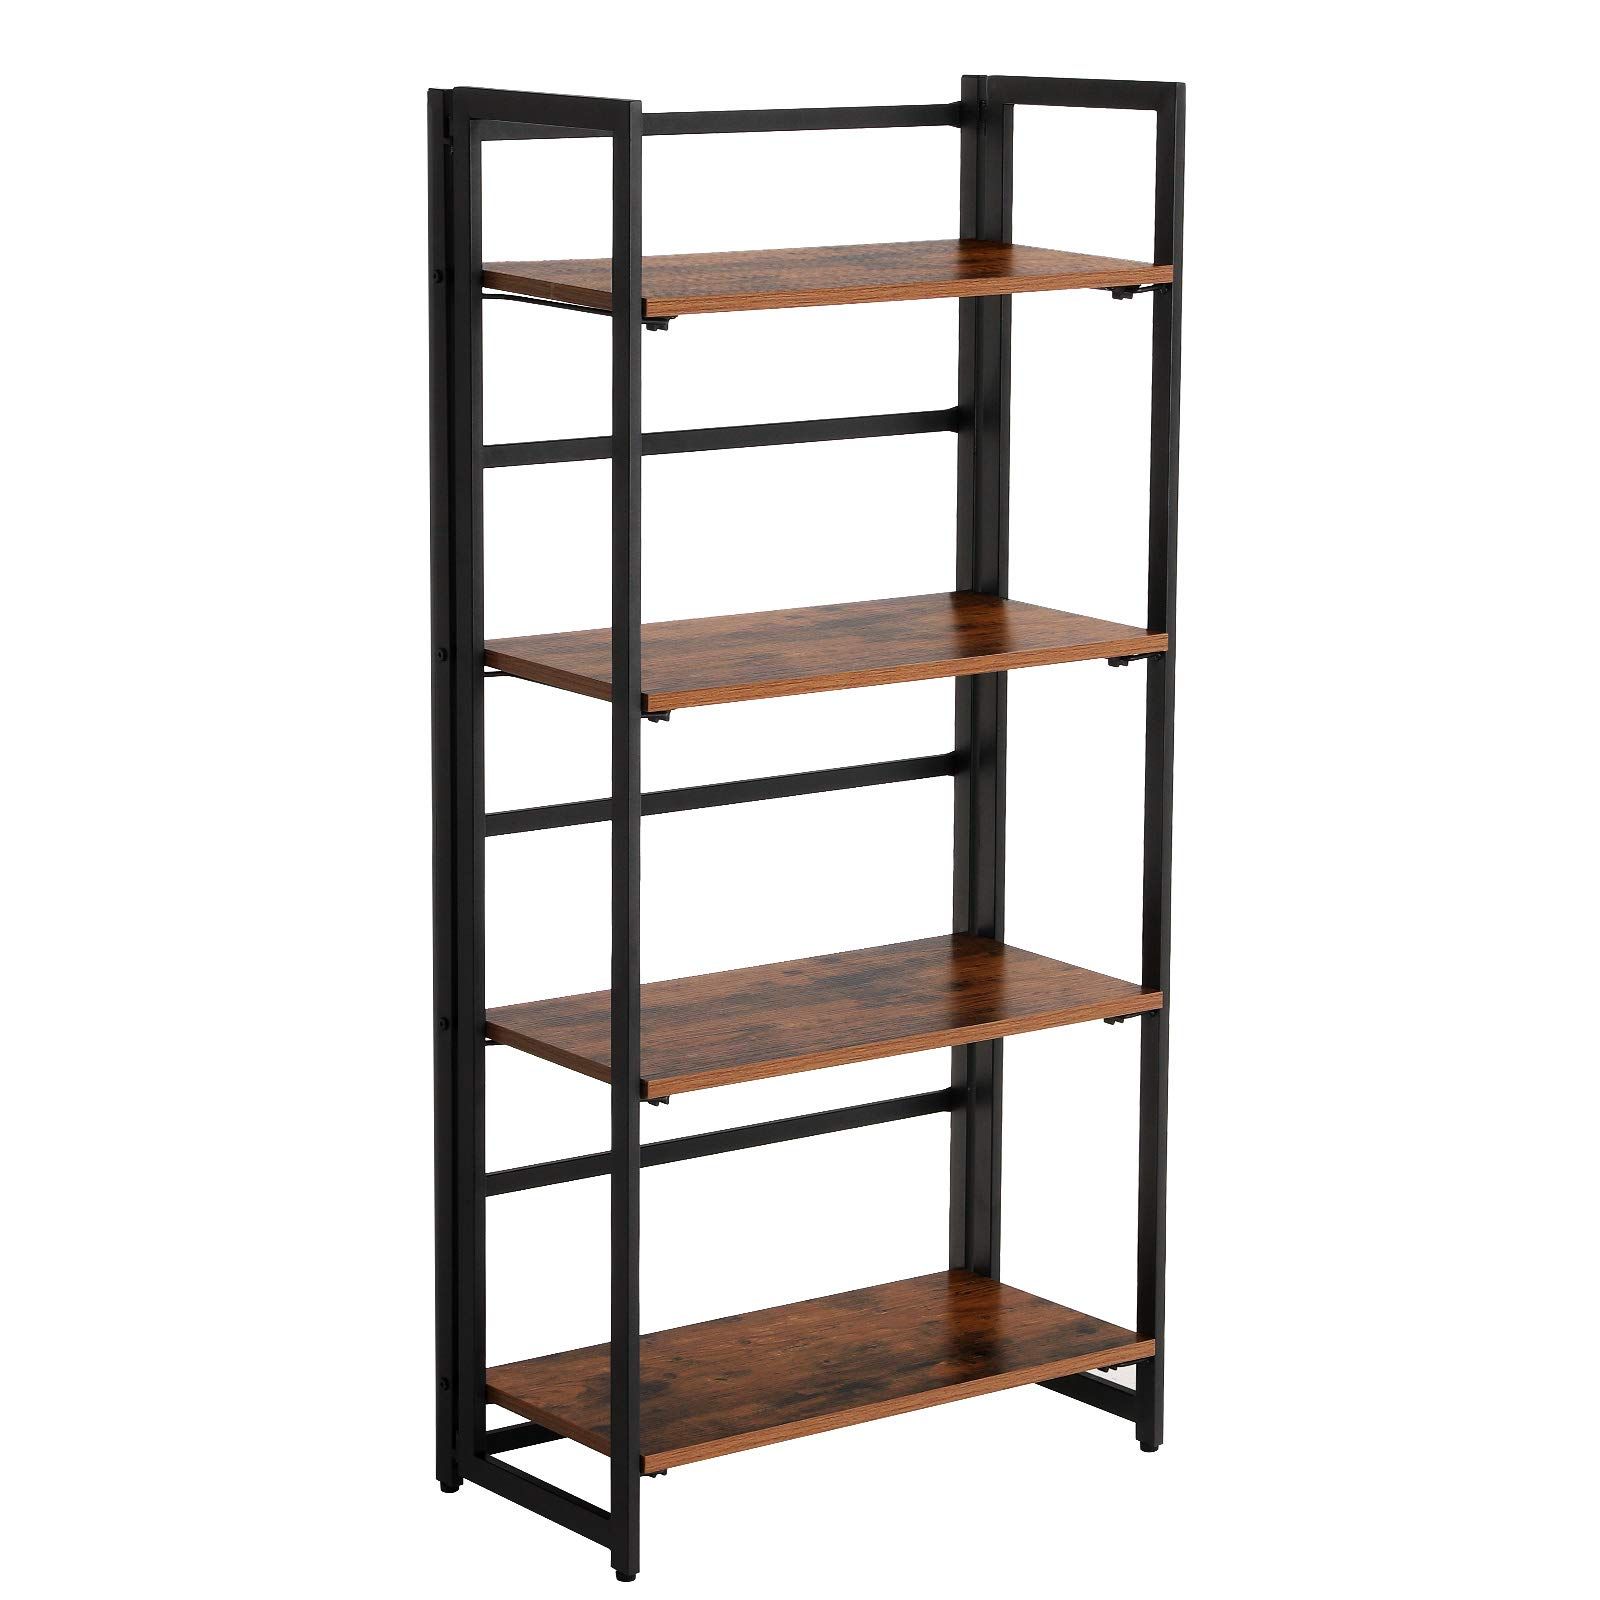 Comodo Folding Bookshelf, 4-Tier Bookcase, Multifunctional Shelving Unit, Easy Assembly, with Metal Frame, Rustic Dark Brown